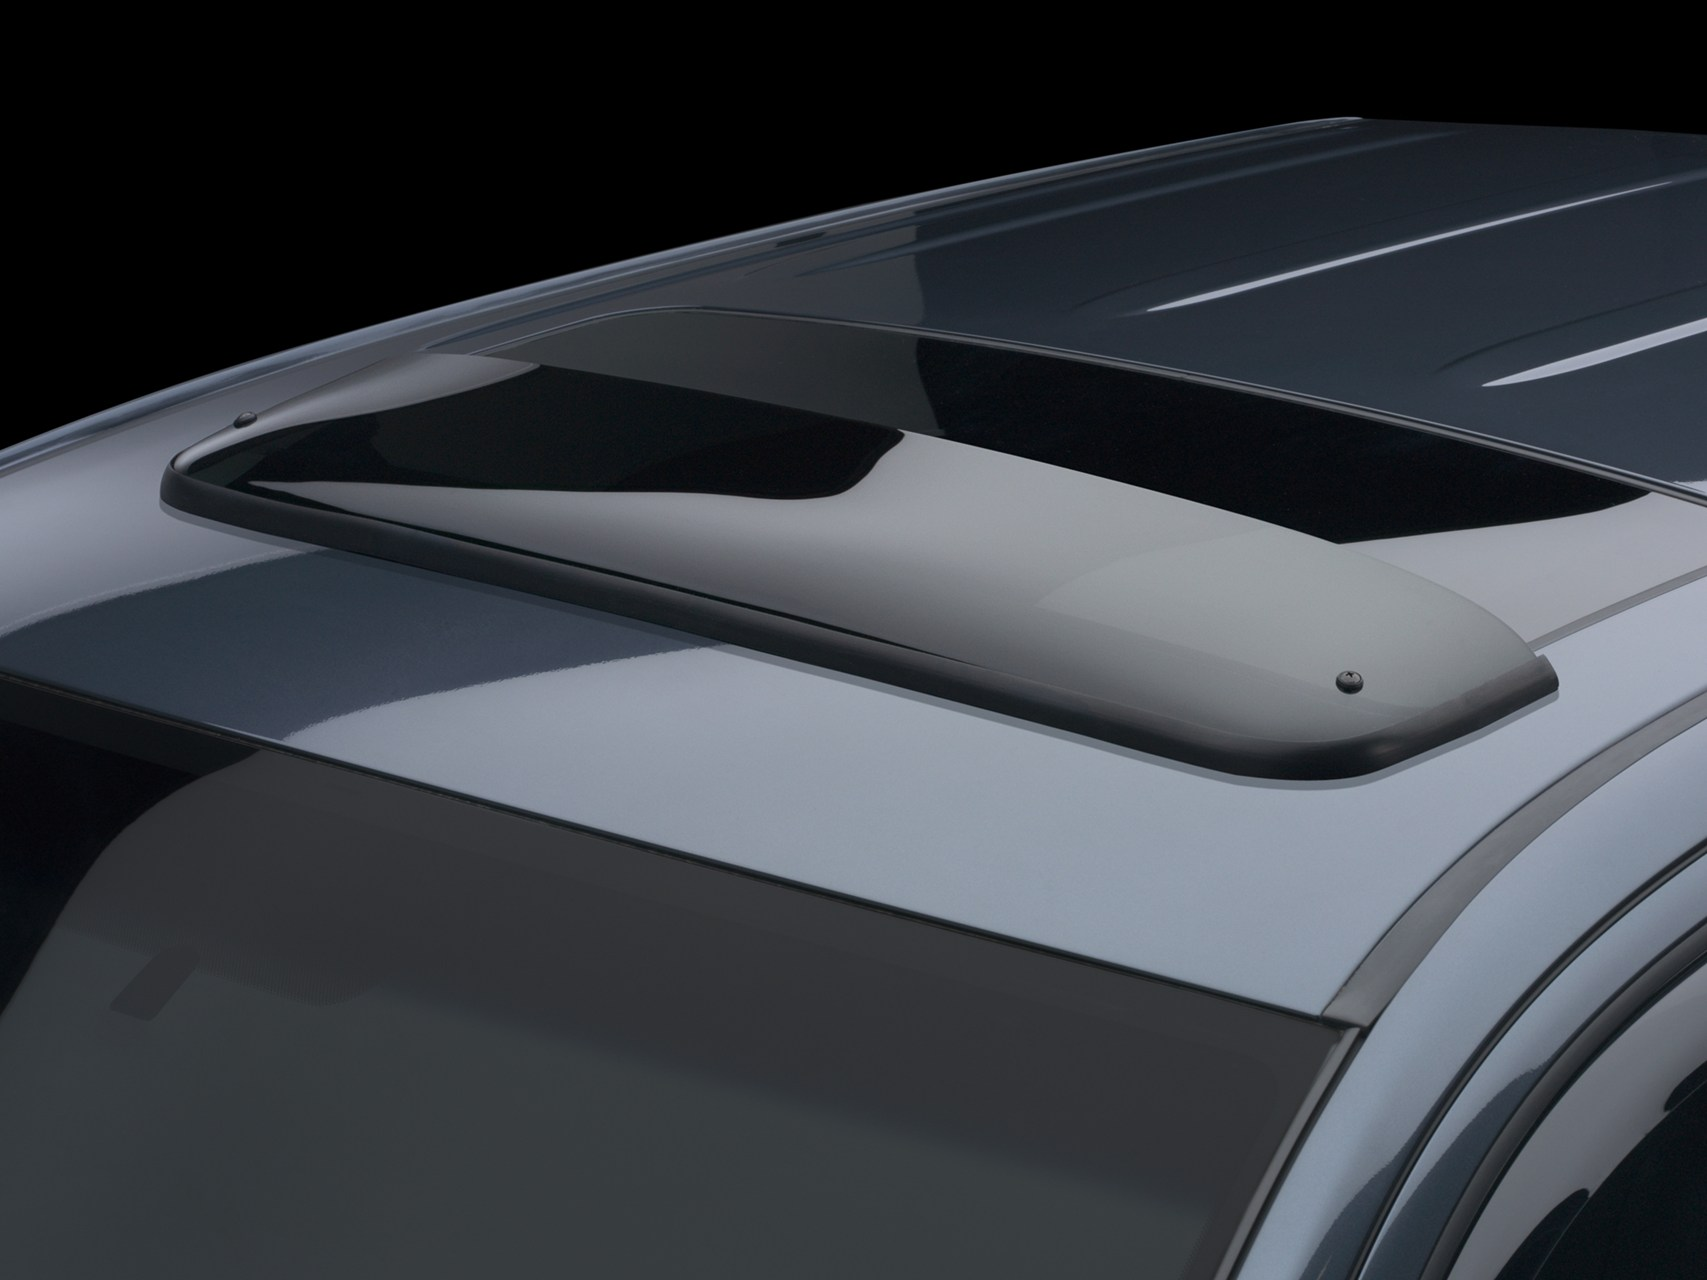 2008 nissan altima wind deflector sunroof and moonroof wind 2008 nissan altima wind deflector sunroof and moonroof wind deflector weathertech vanachro Images